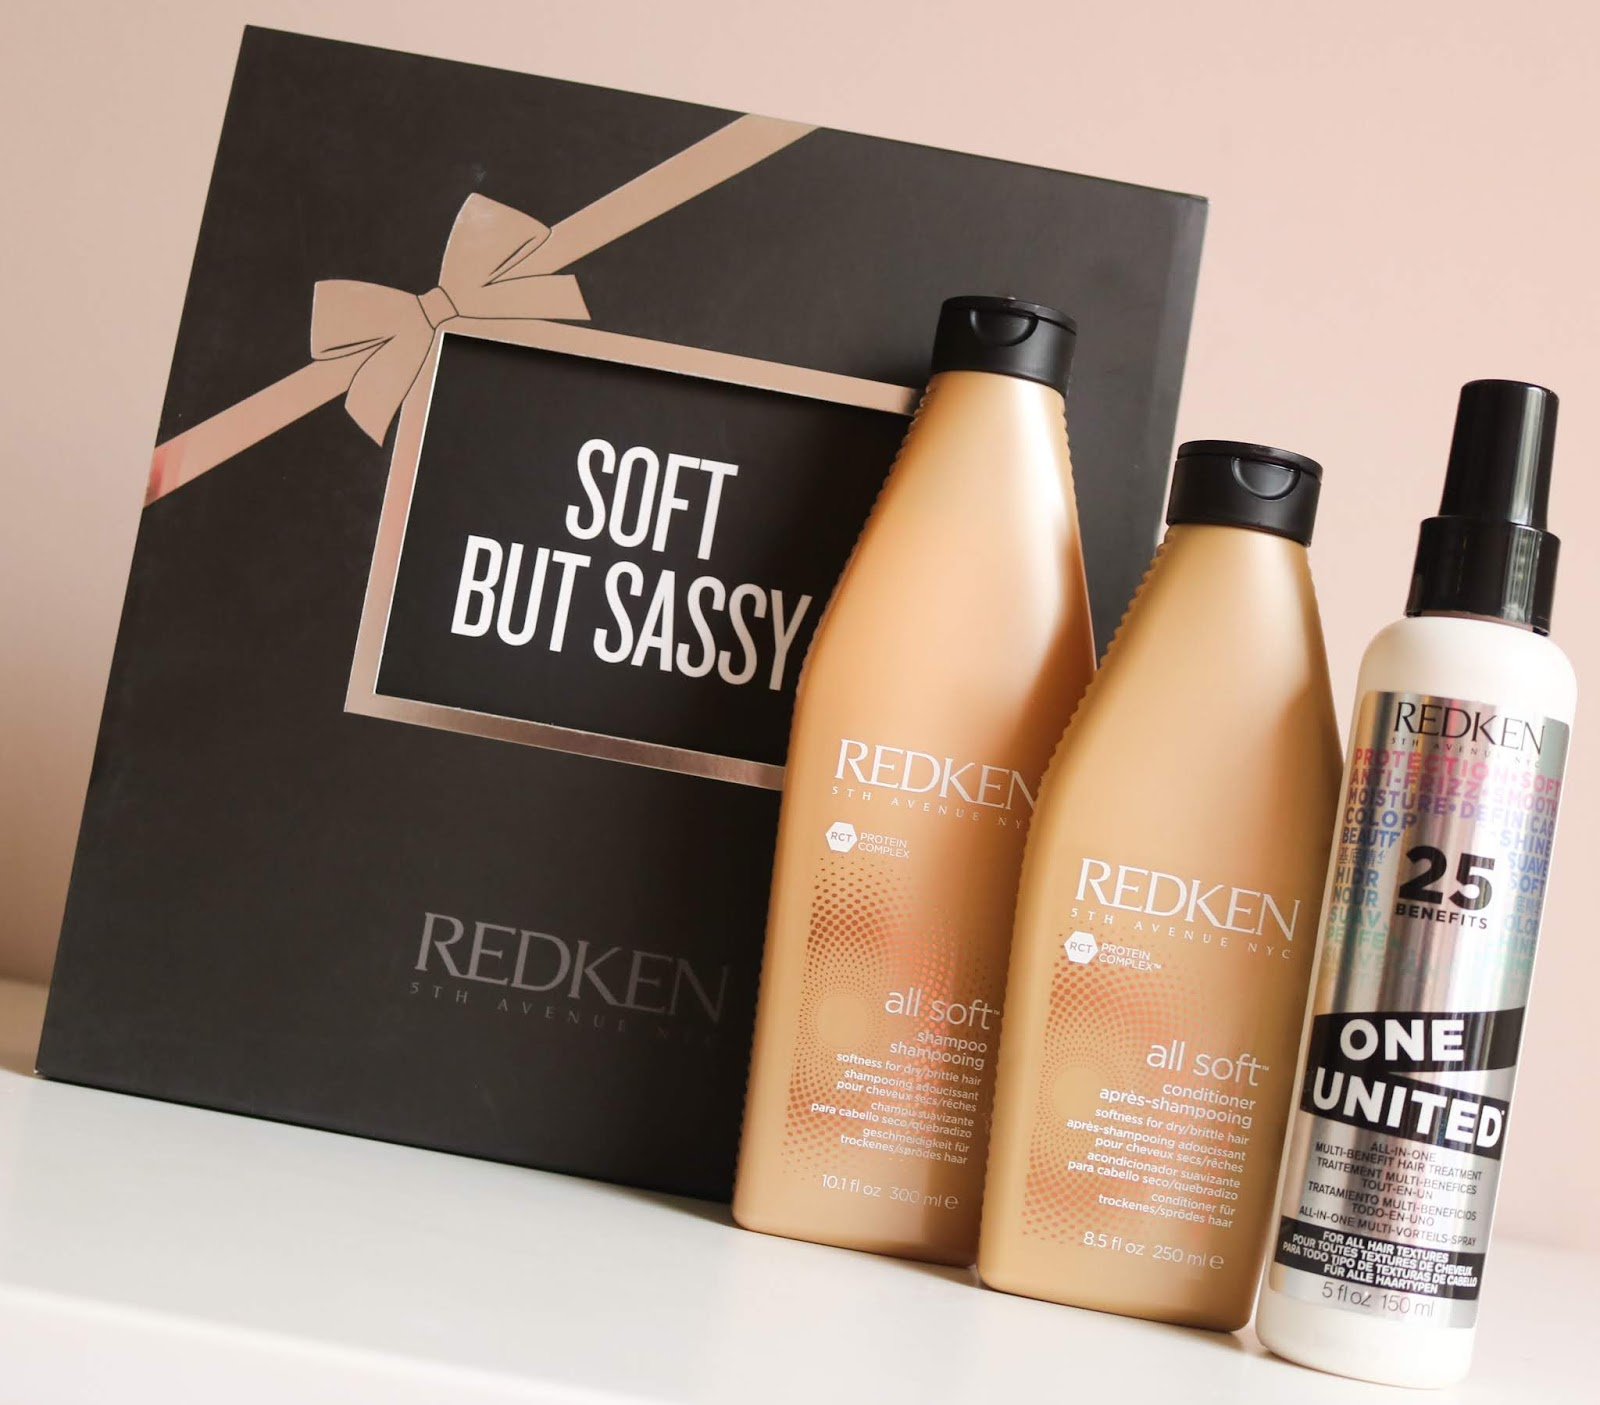 available in redken salons nationwide now the soft but sassy collection comprises of their all soft shampoo all soft conditioner and one united all in one